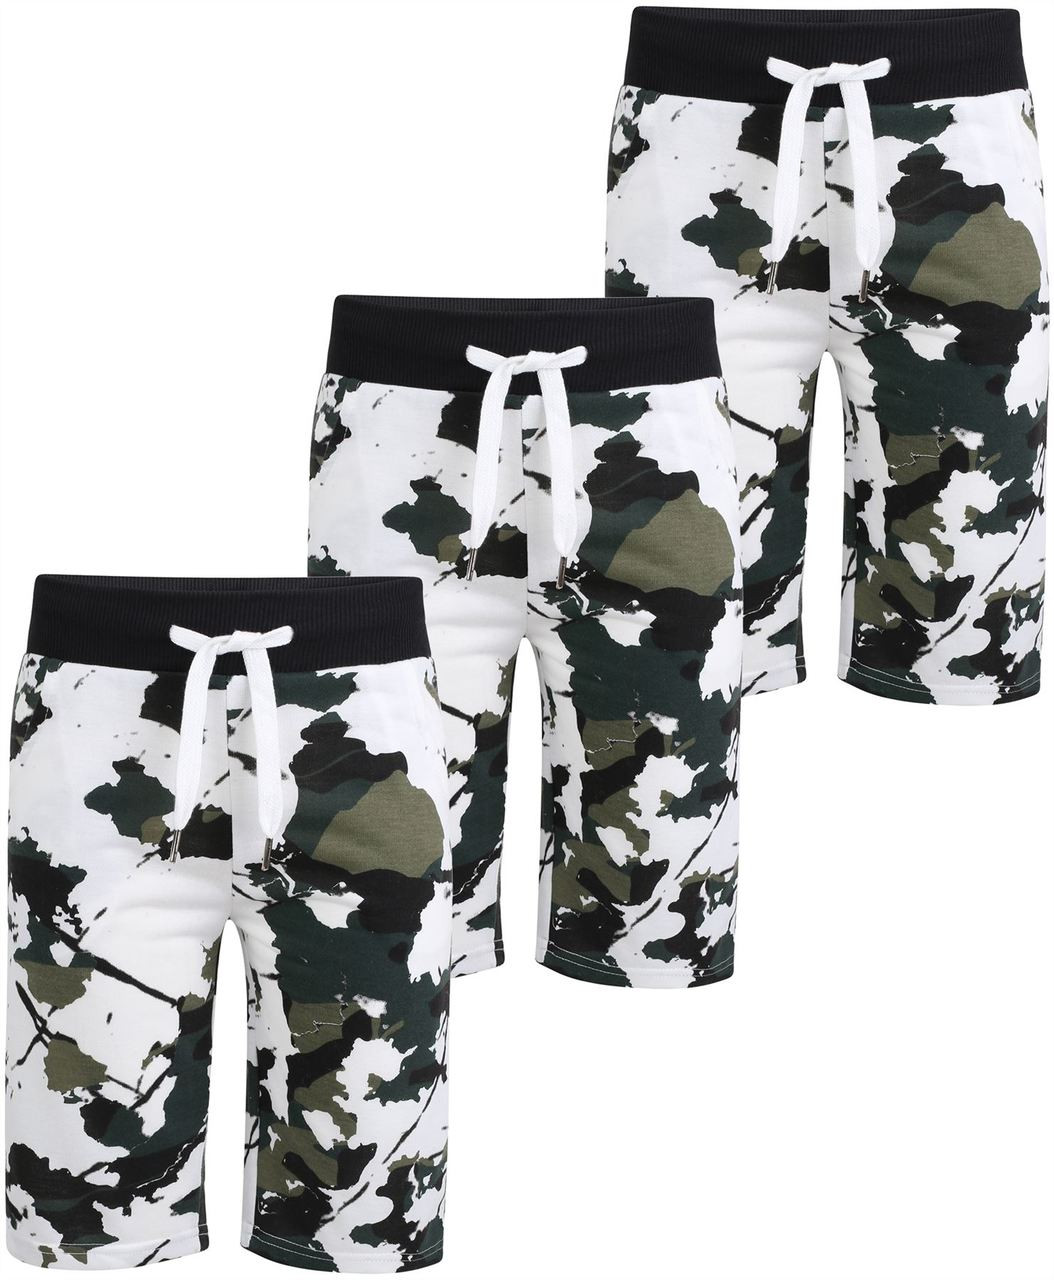 8c77c2a3eb LotMart Kids Camo Summer Shorts Bundle Pack of 2 Colours Shorts